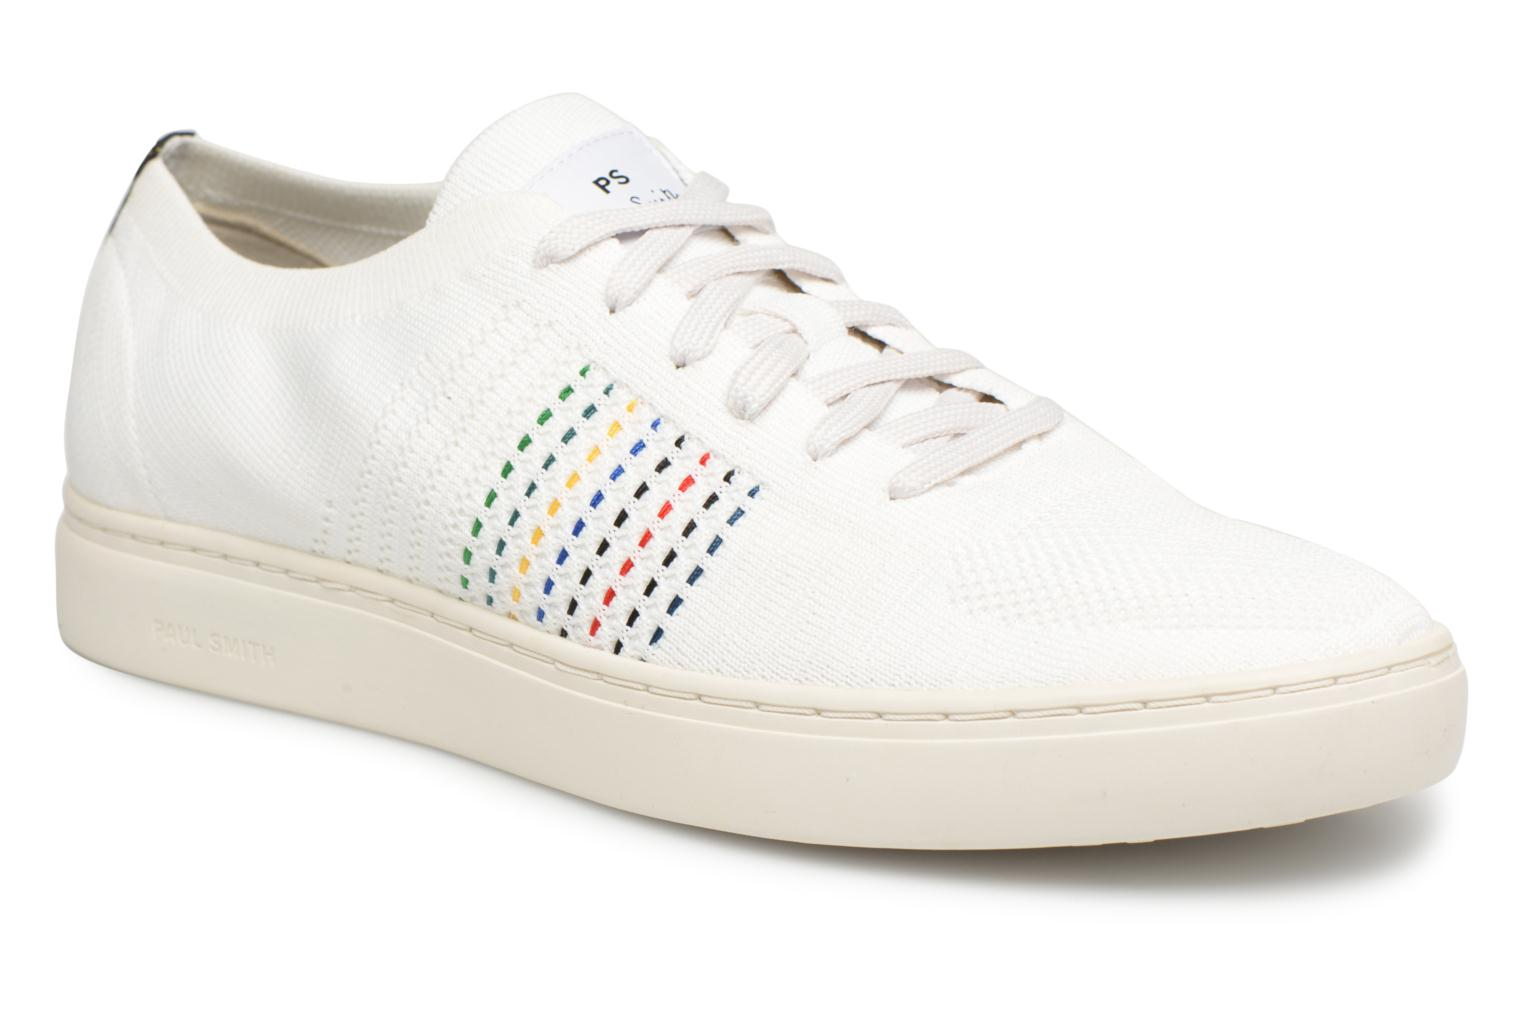 Marques Chaussure luxe femme Paul Smith femme Lapin WHITE 01